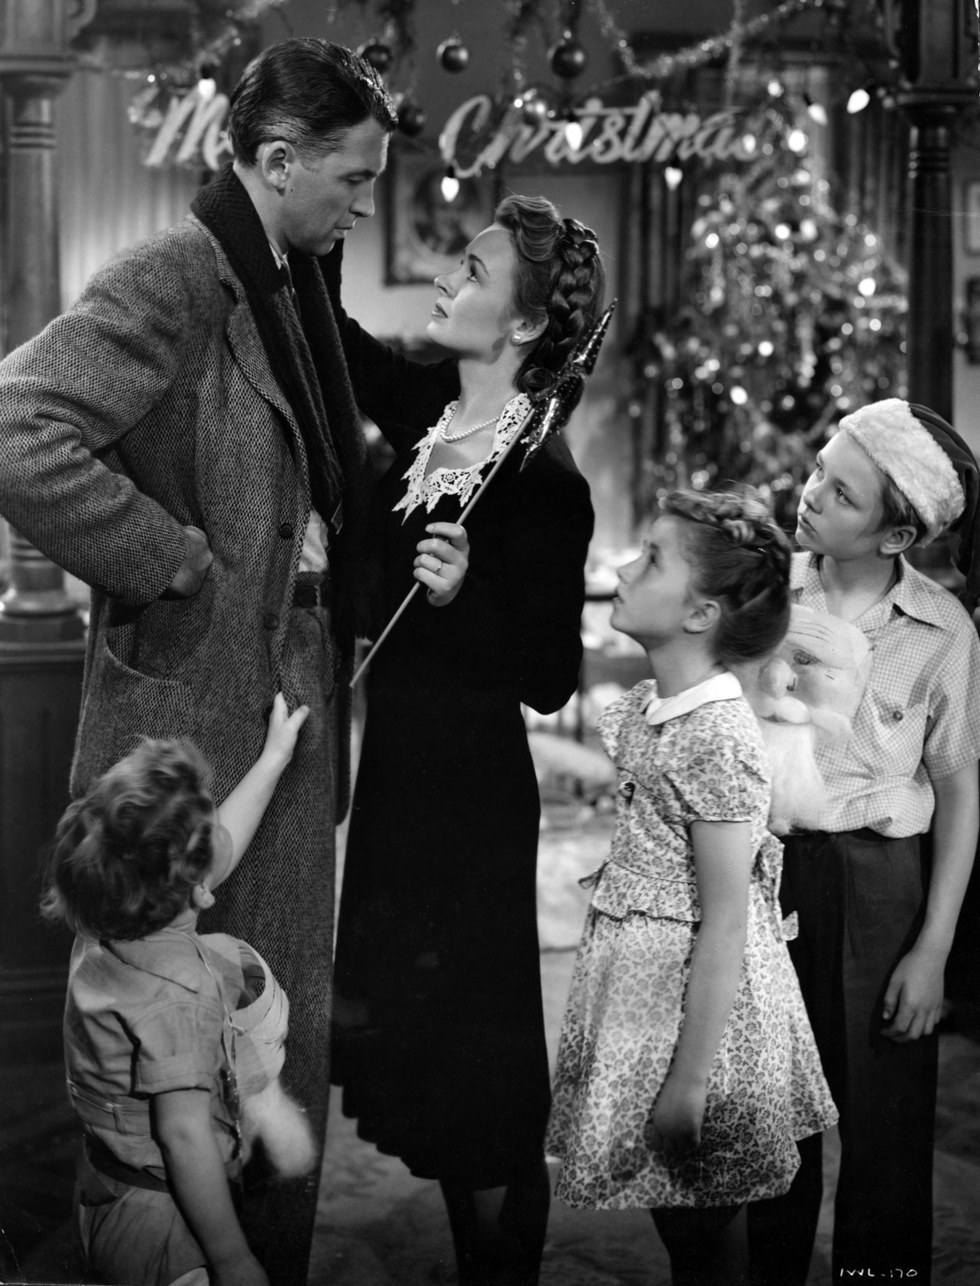 My Favorite Christmas Movies That I Plan On Watching This Week